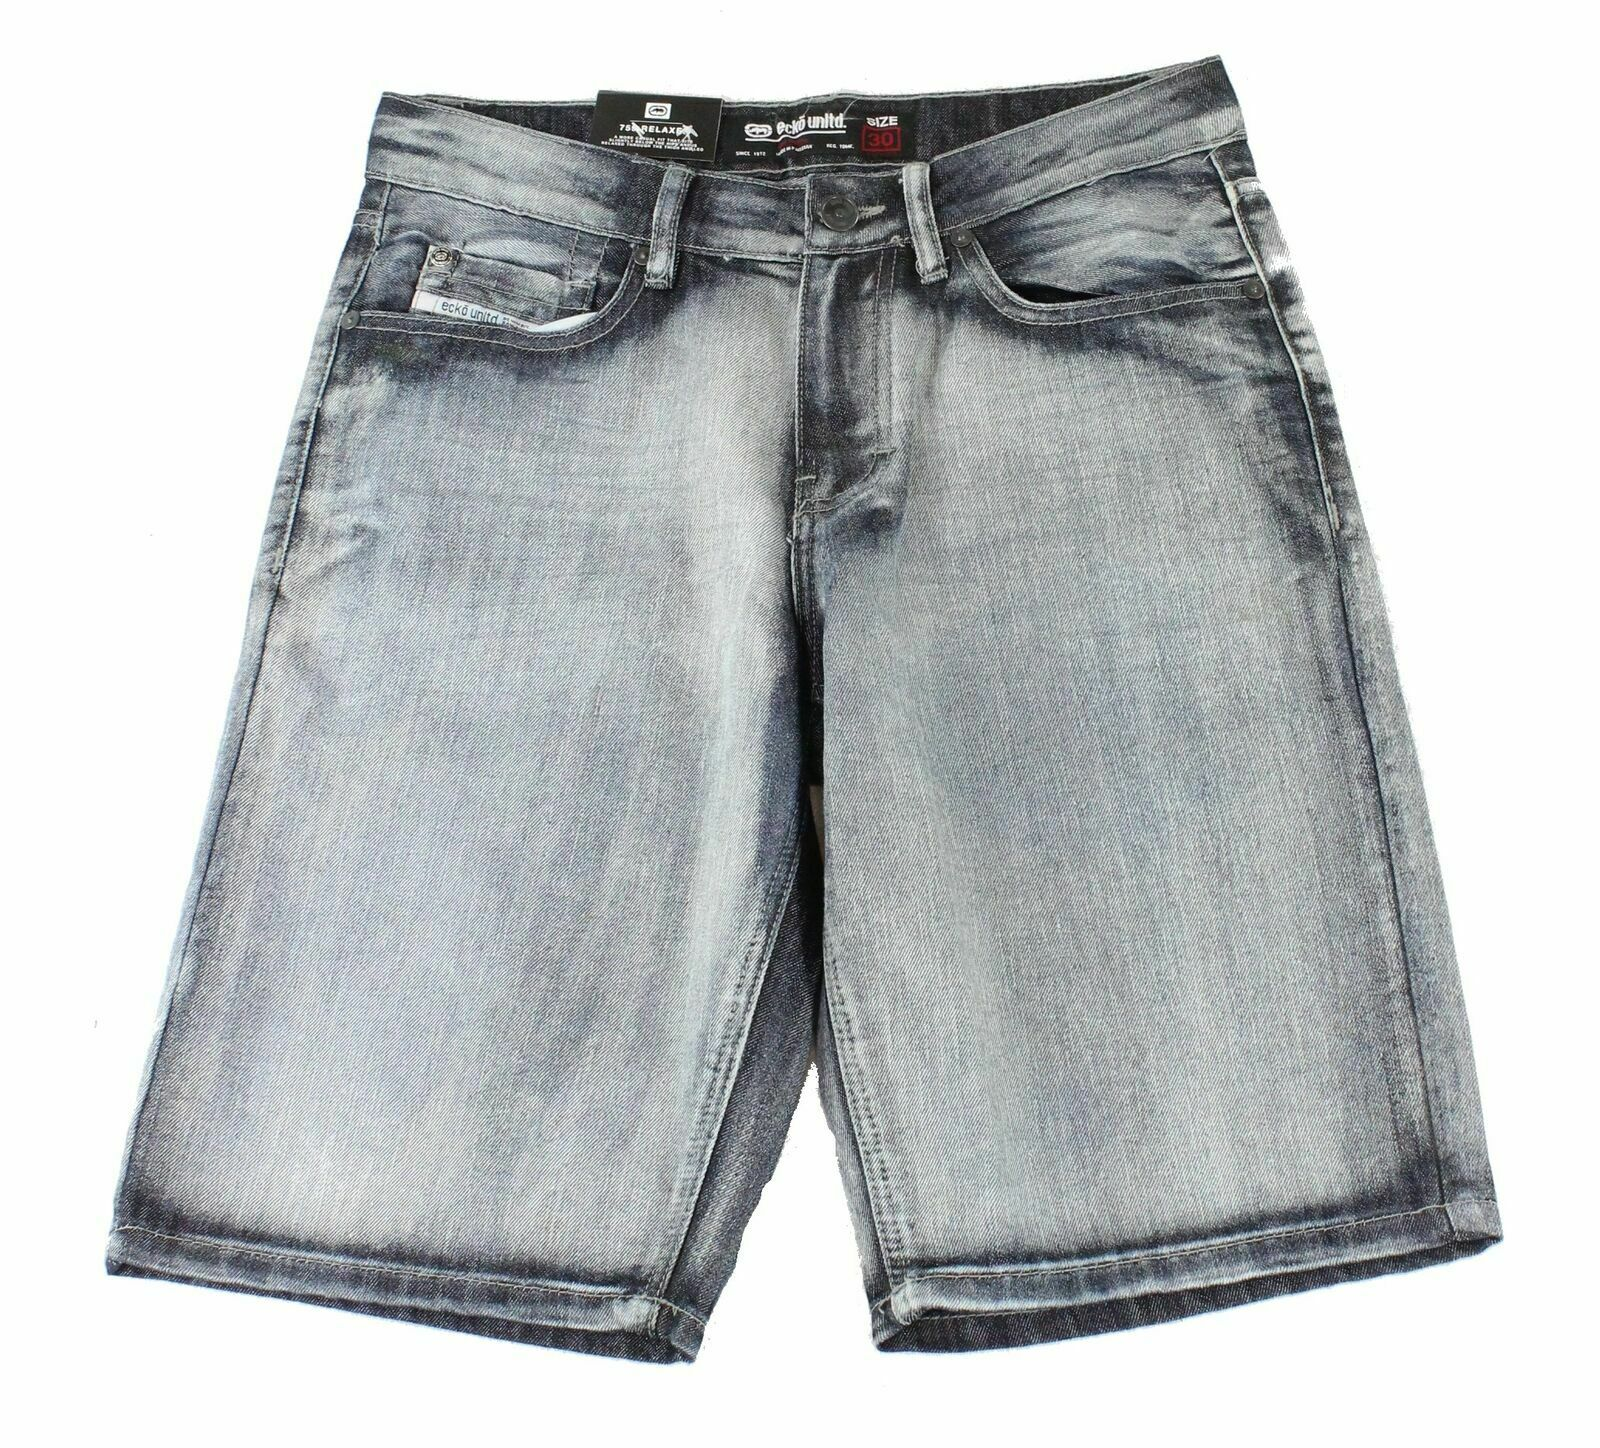 New-Ecko-Unltd-Mens-Shorts-Blue-Size-34-Denim-759-Relaxed-Logo-Printed-48-216